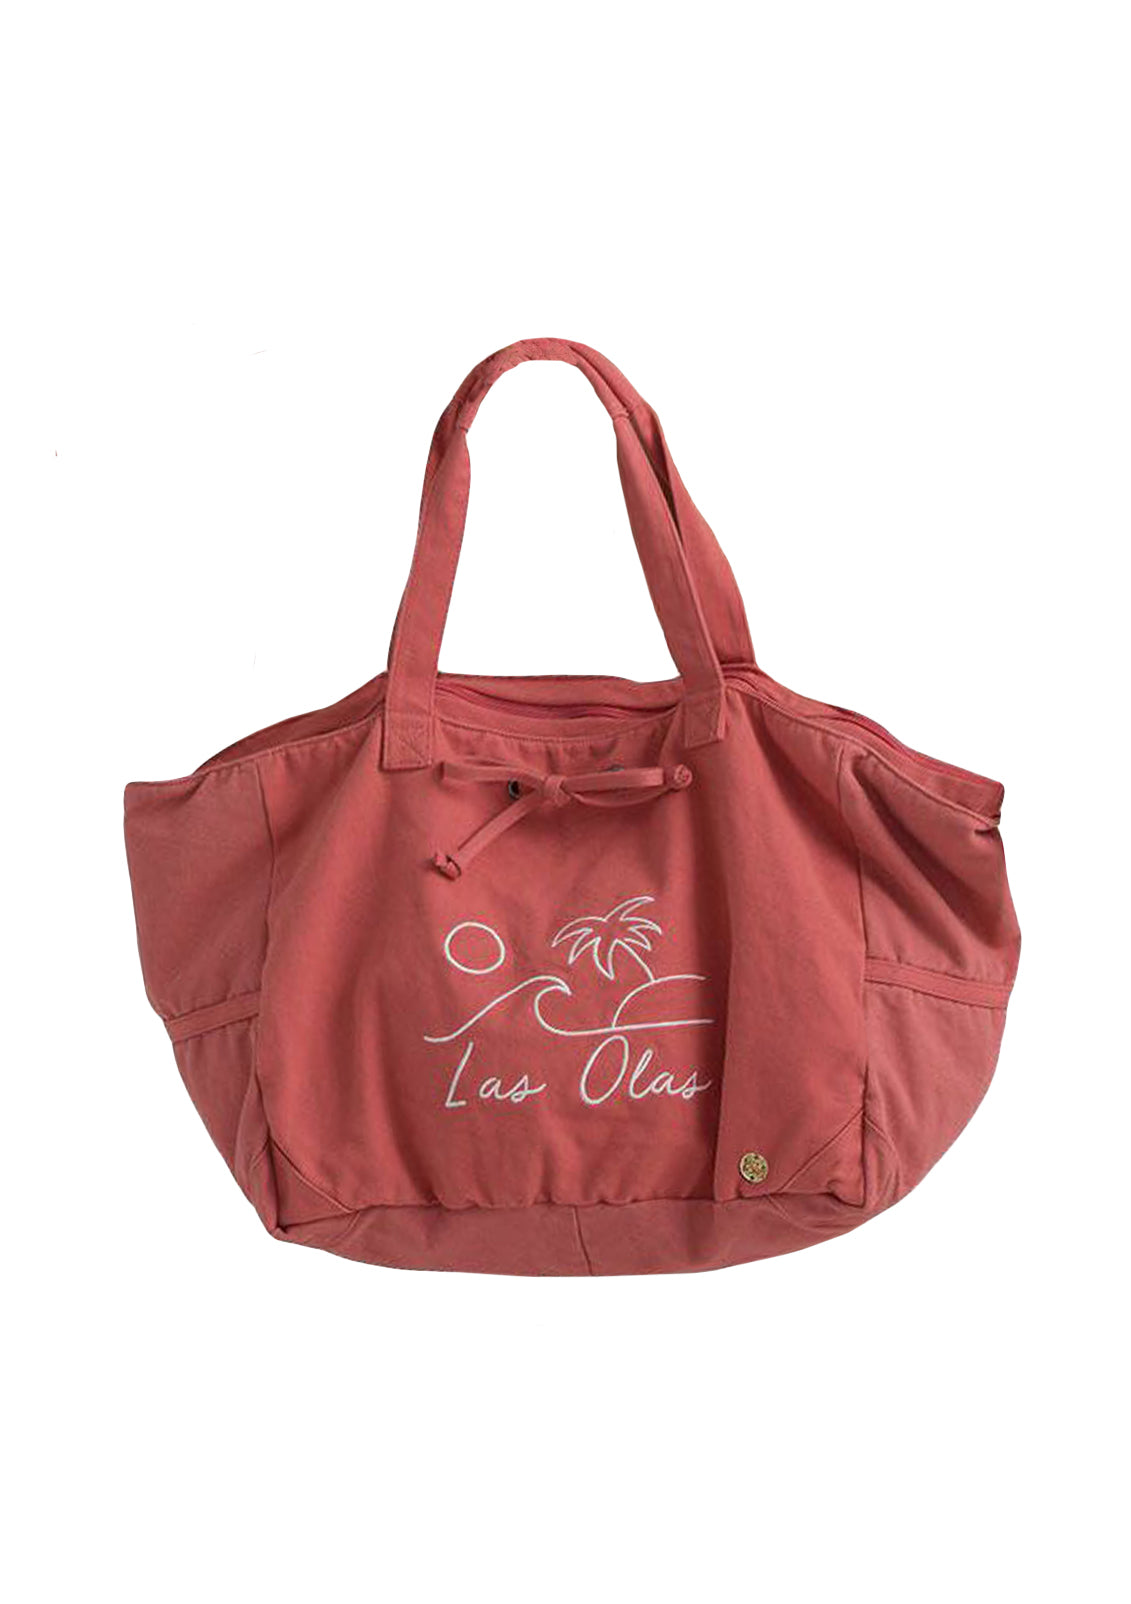 Las Olas Canvas Tote Bag